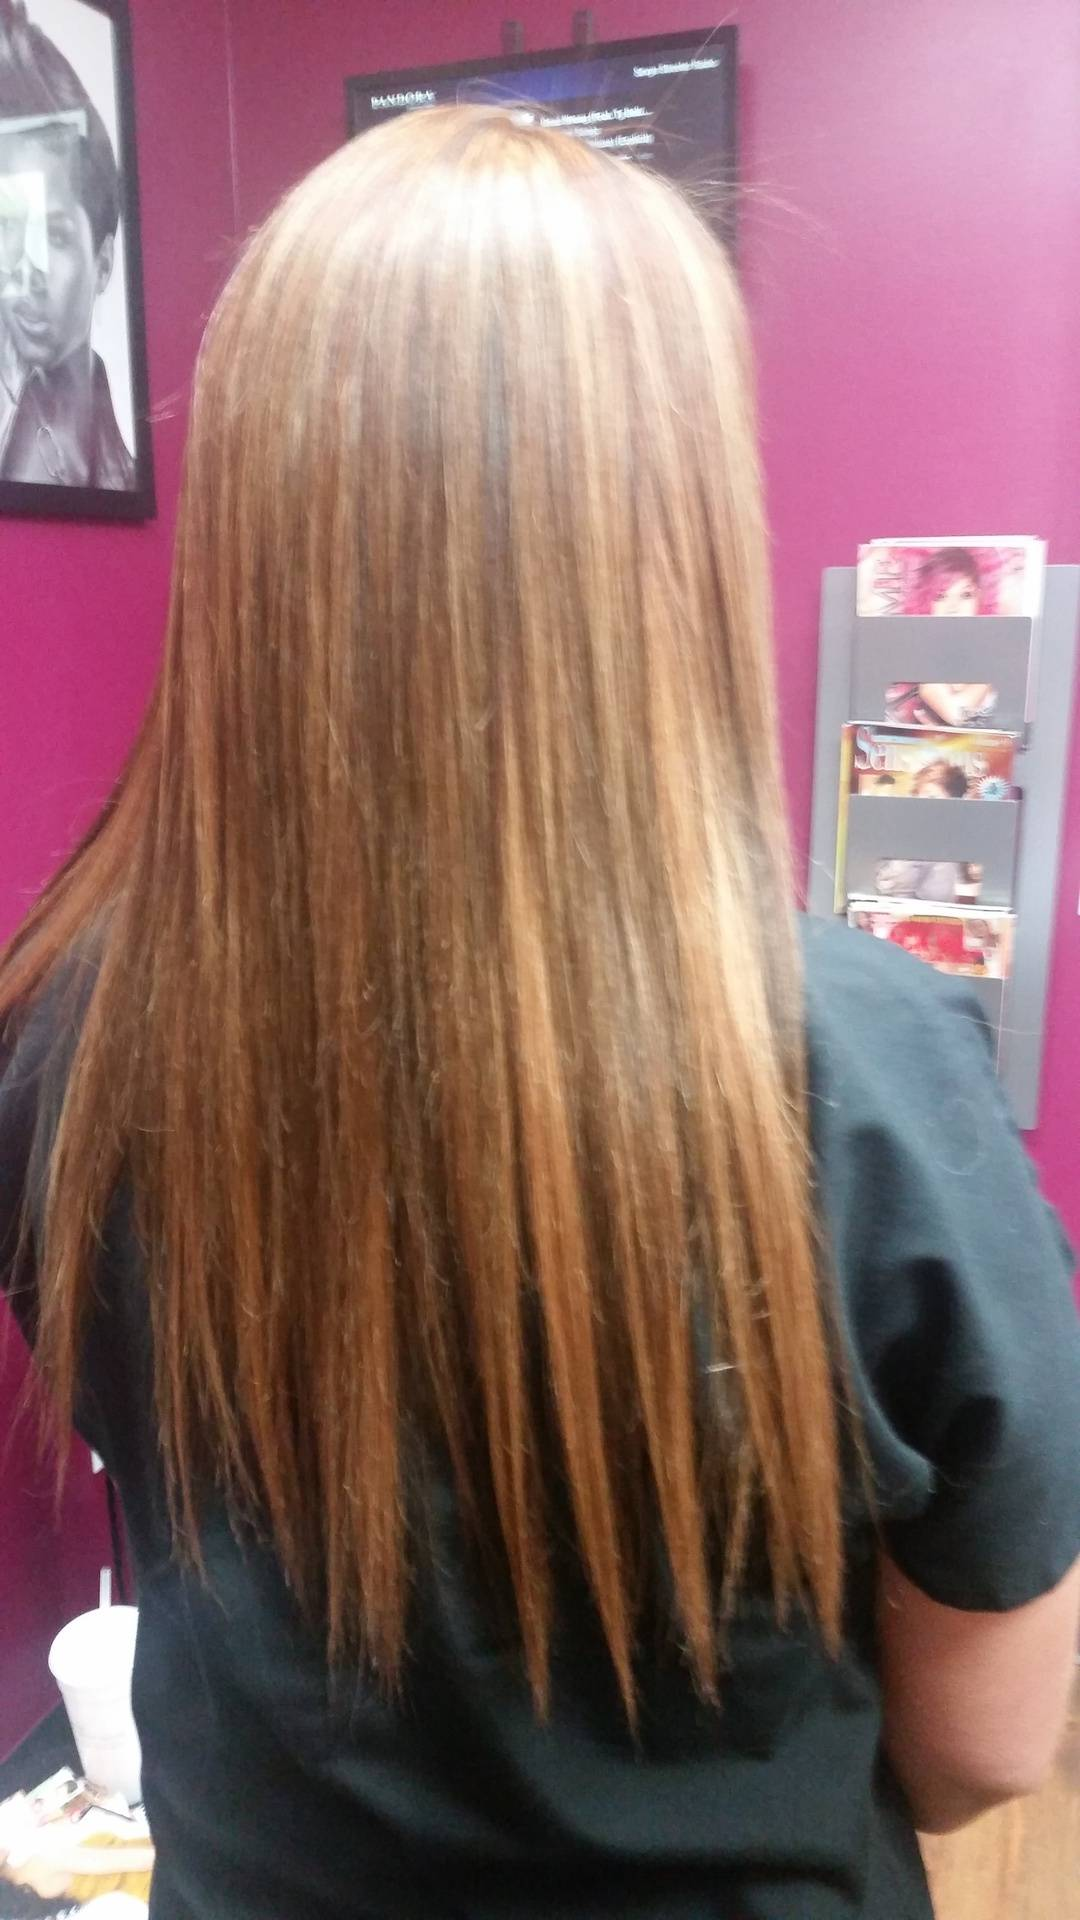 Sewn in extensions